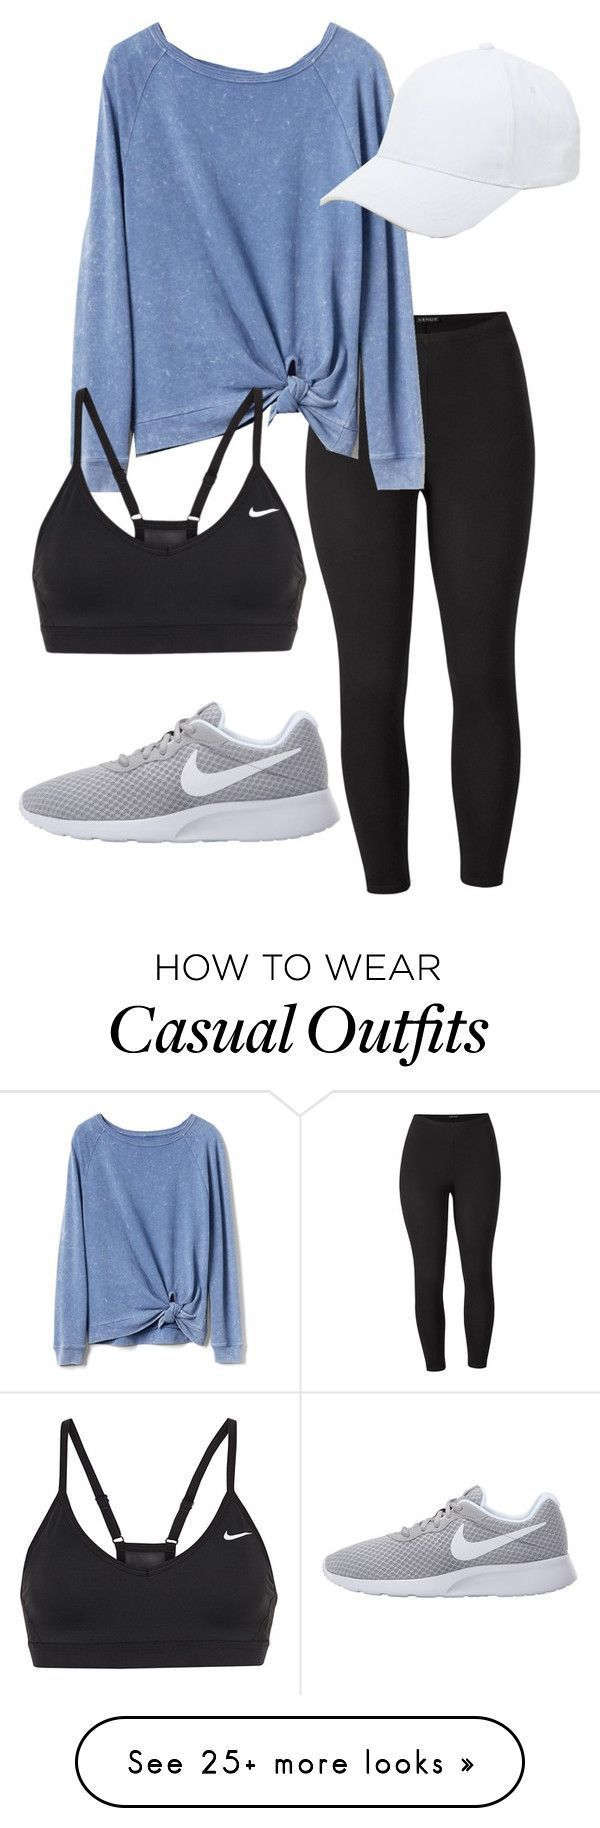 """Everyday Casual look ✔️"" by smhowie on Polyvore featuring Venus, Gap, NIKE, Sole Society and plus size clothing – Kathy Kasparek"